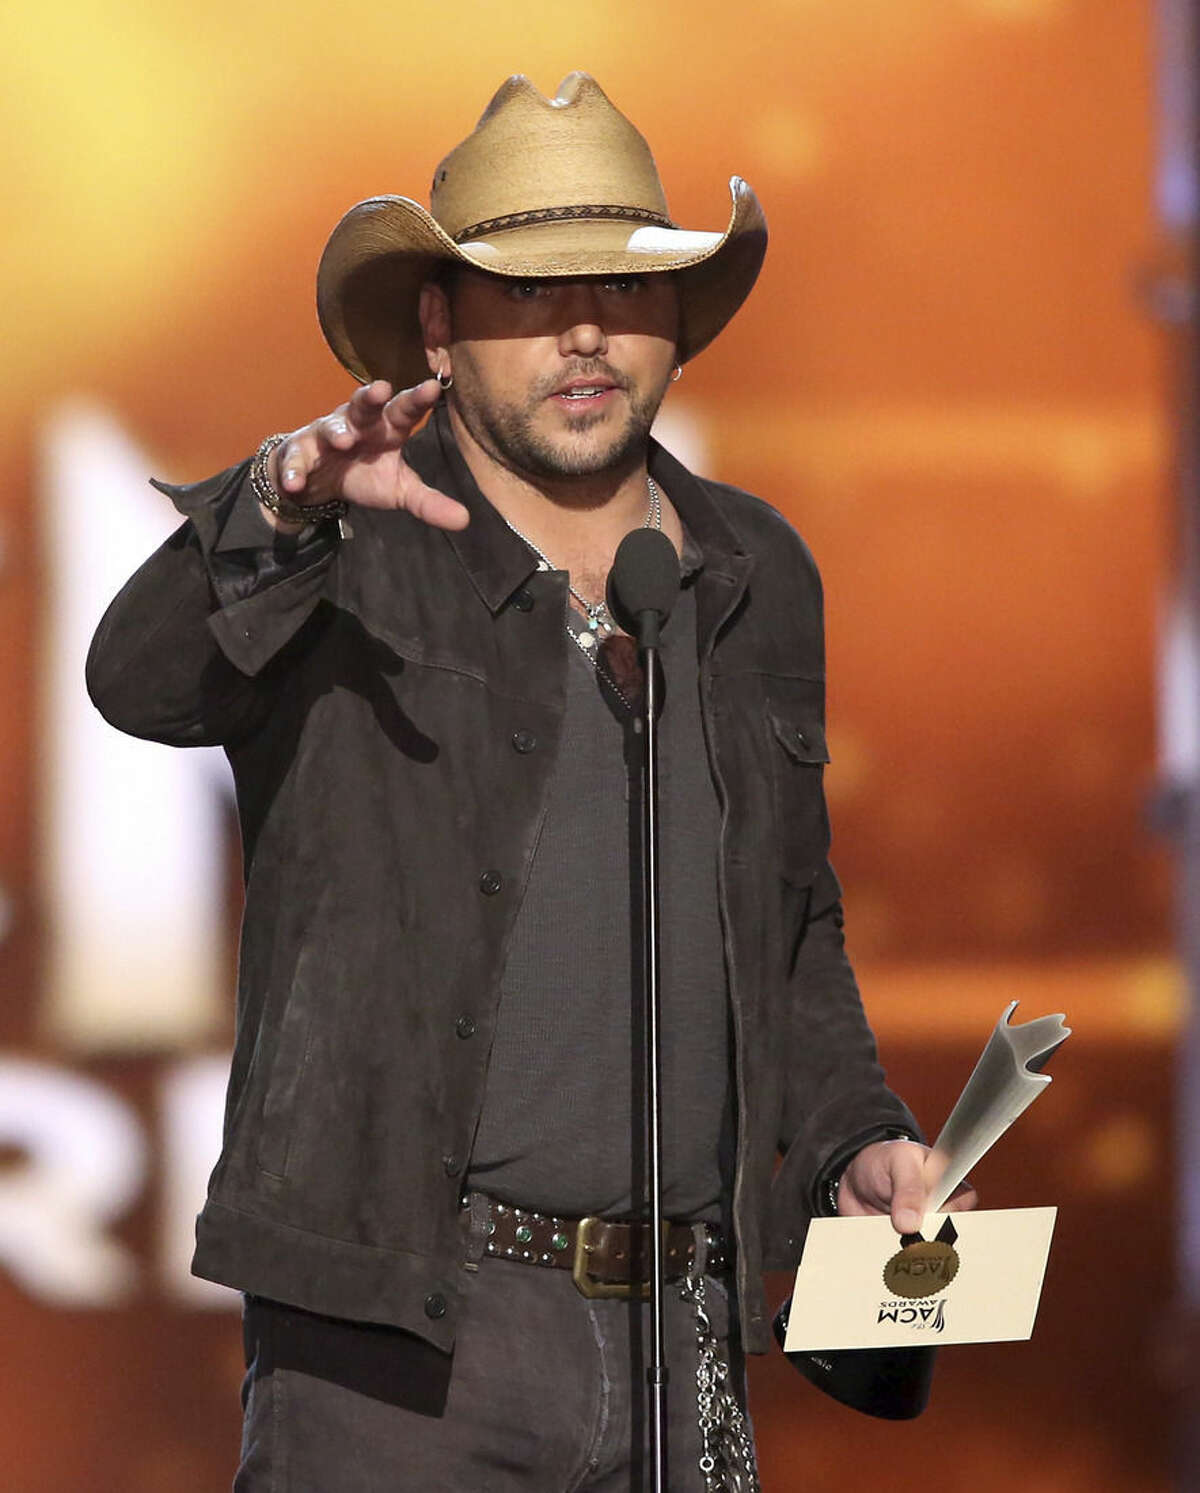 Jason Aldean accepts the award for entertainer of the year at the 51st annual Academy of Country Music Awards at the MGM Grand Garden Arena on Sunday, April 3, 2016, in Las Vegas. (Photo by Matt Sayles/Invision/AP)